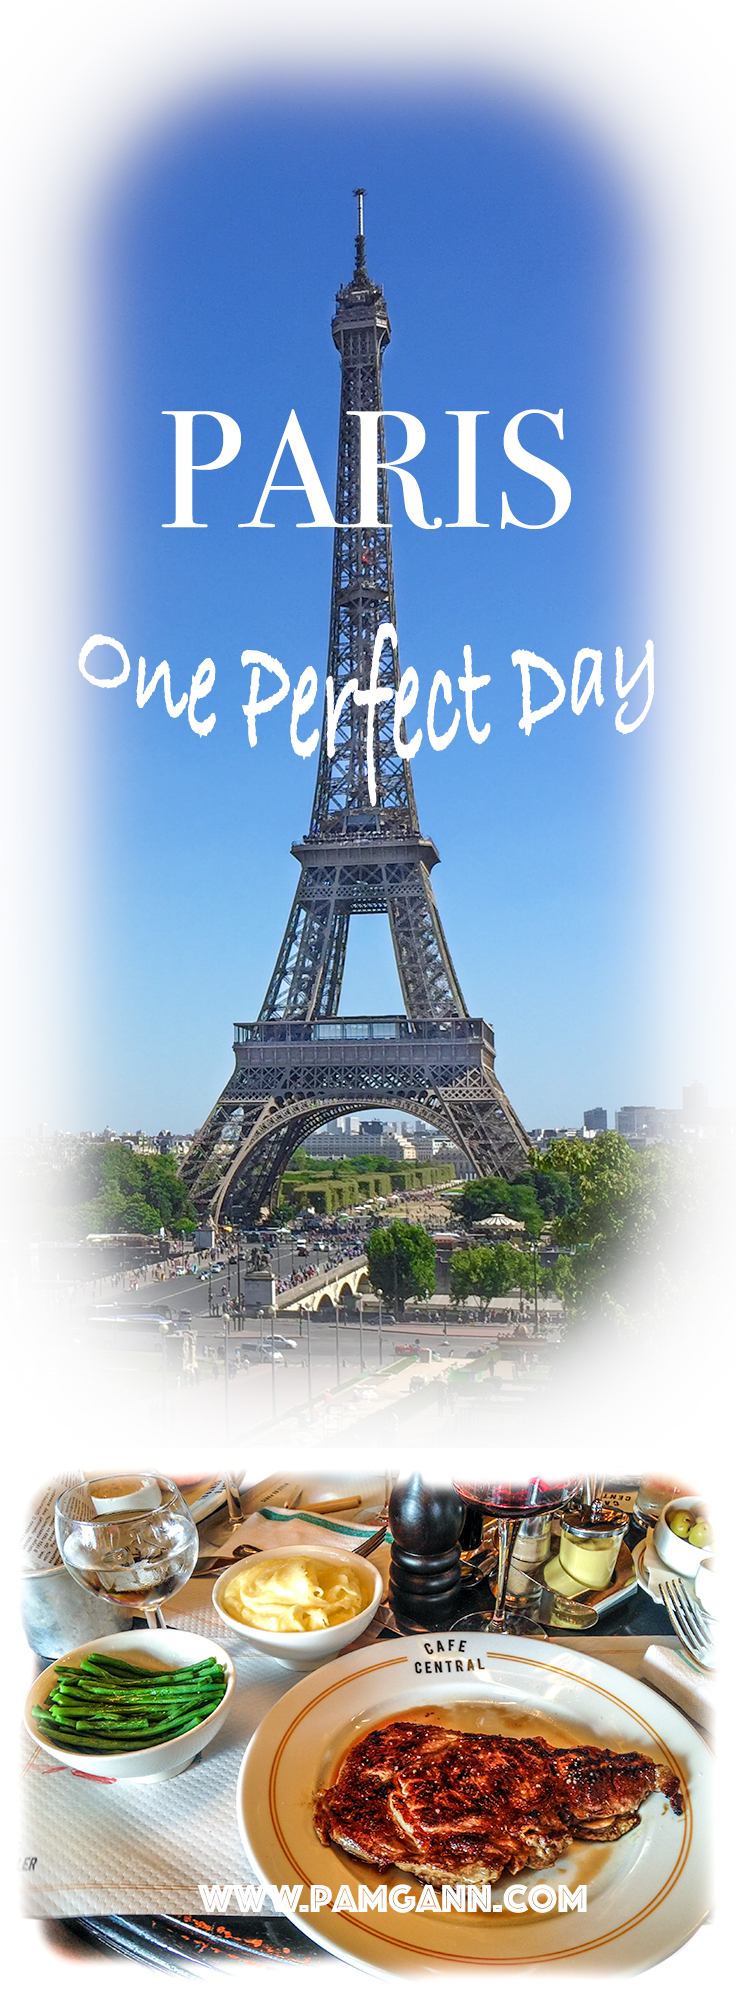 We only got to spend one day in Paris but it was perfect. A dream come true! #familytravel